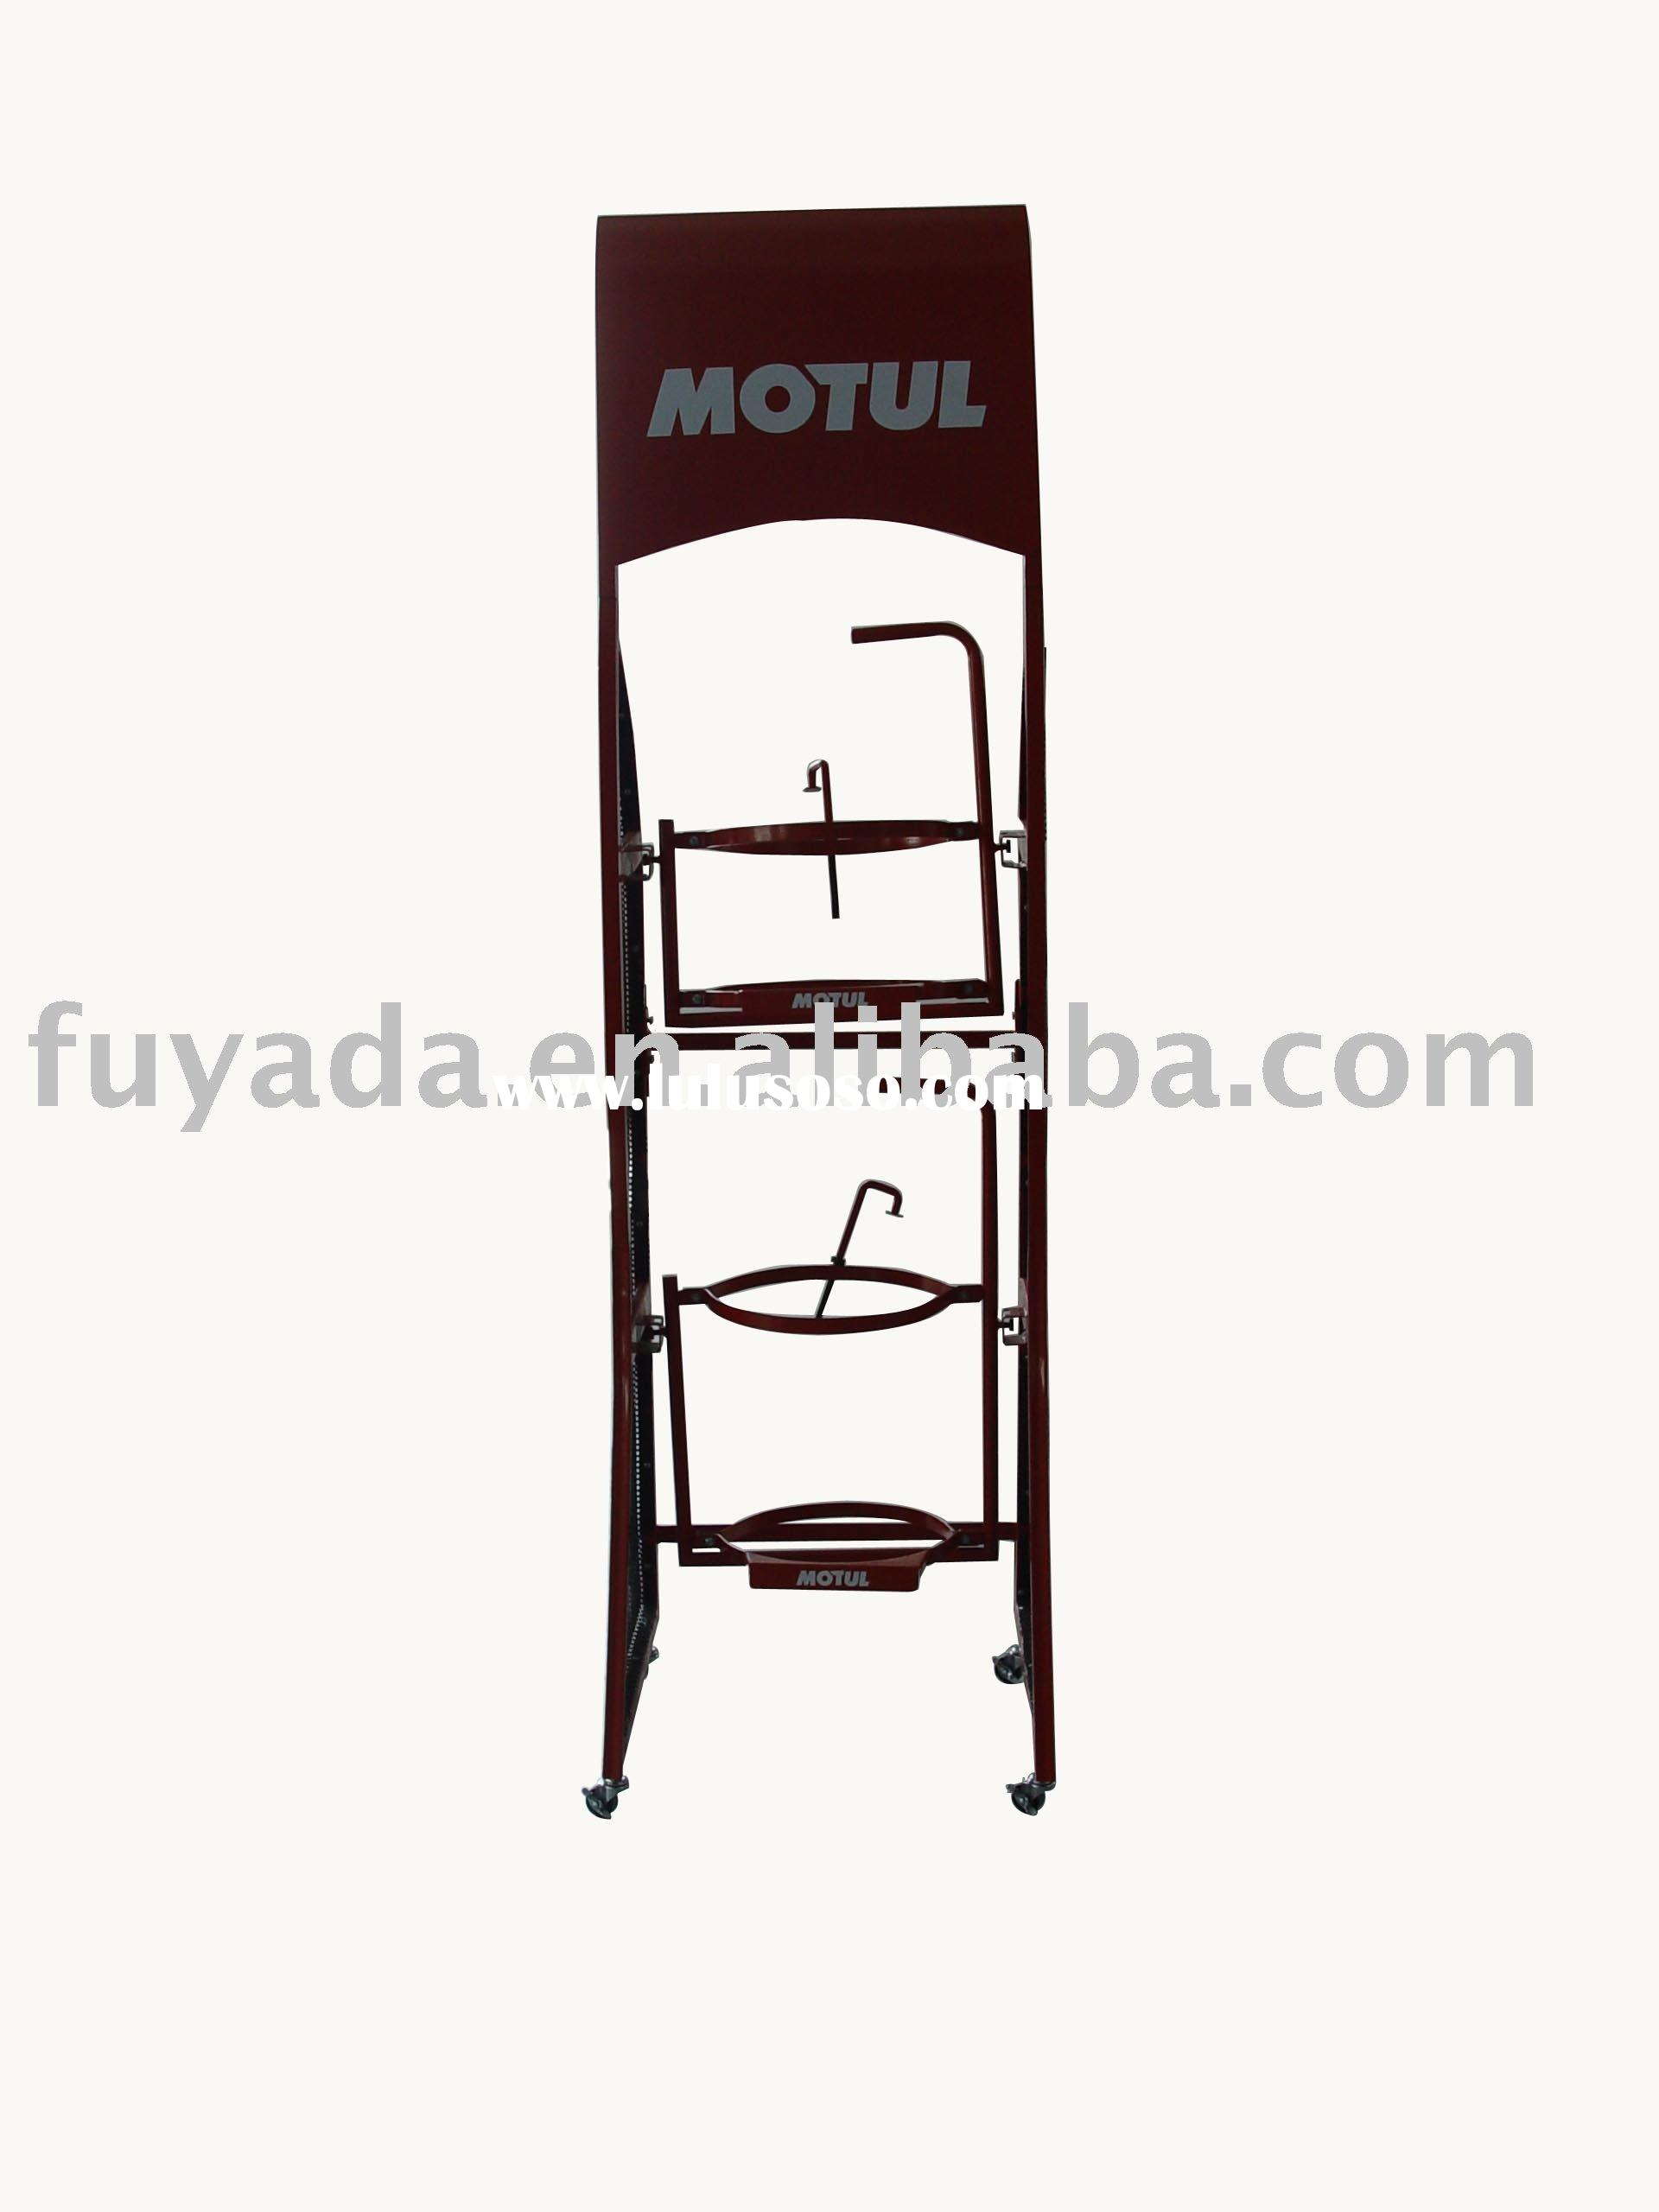 Display stand/Motor-oil display rack & shelf & racking &shelves